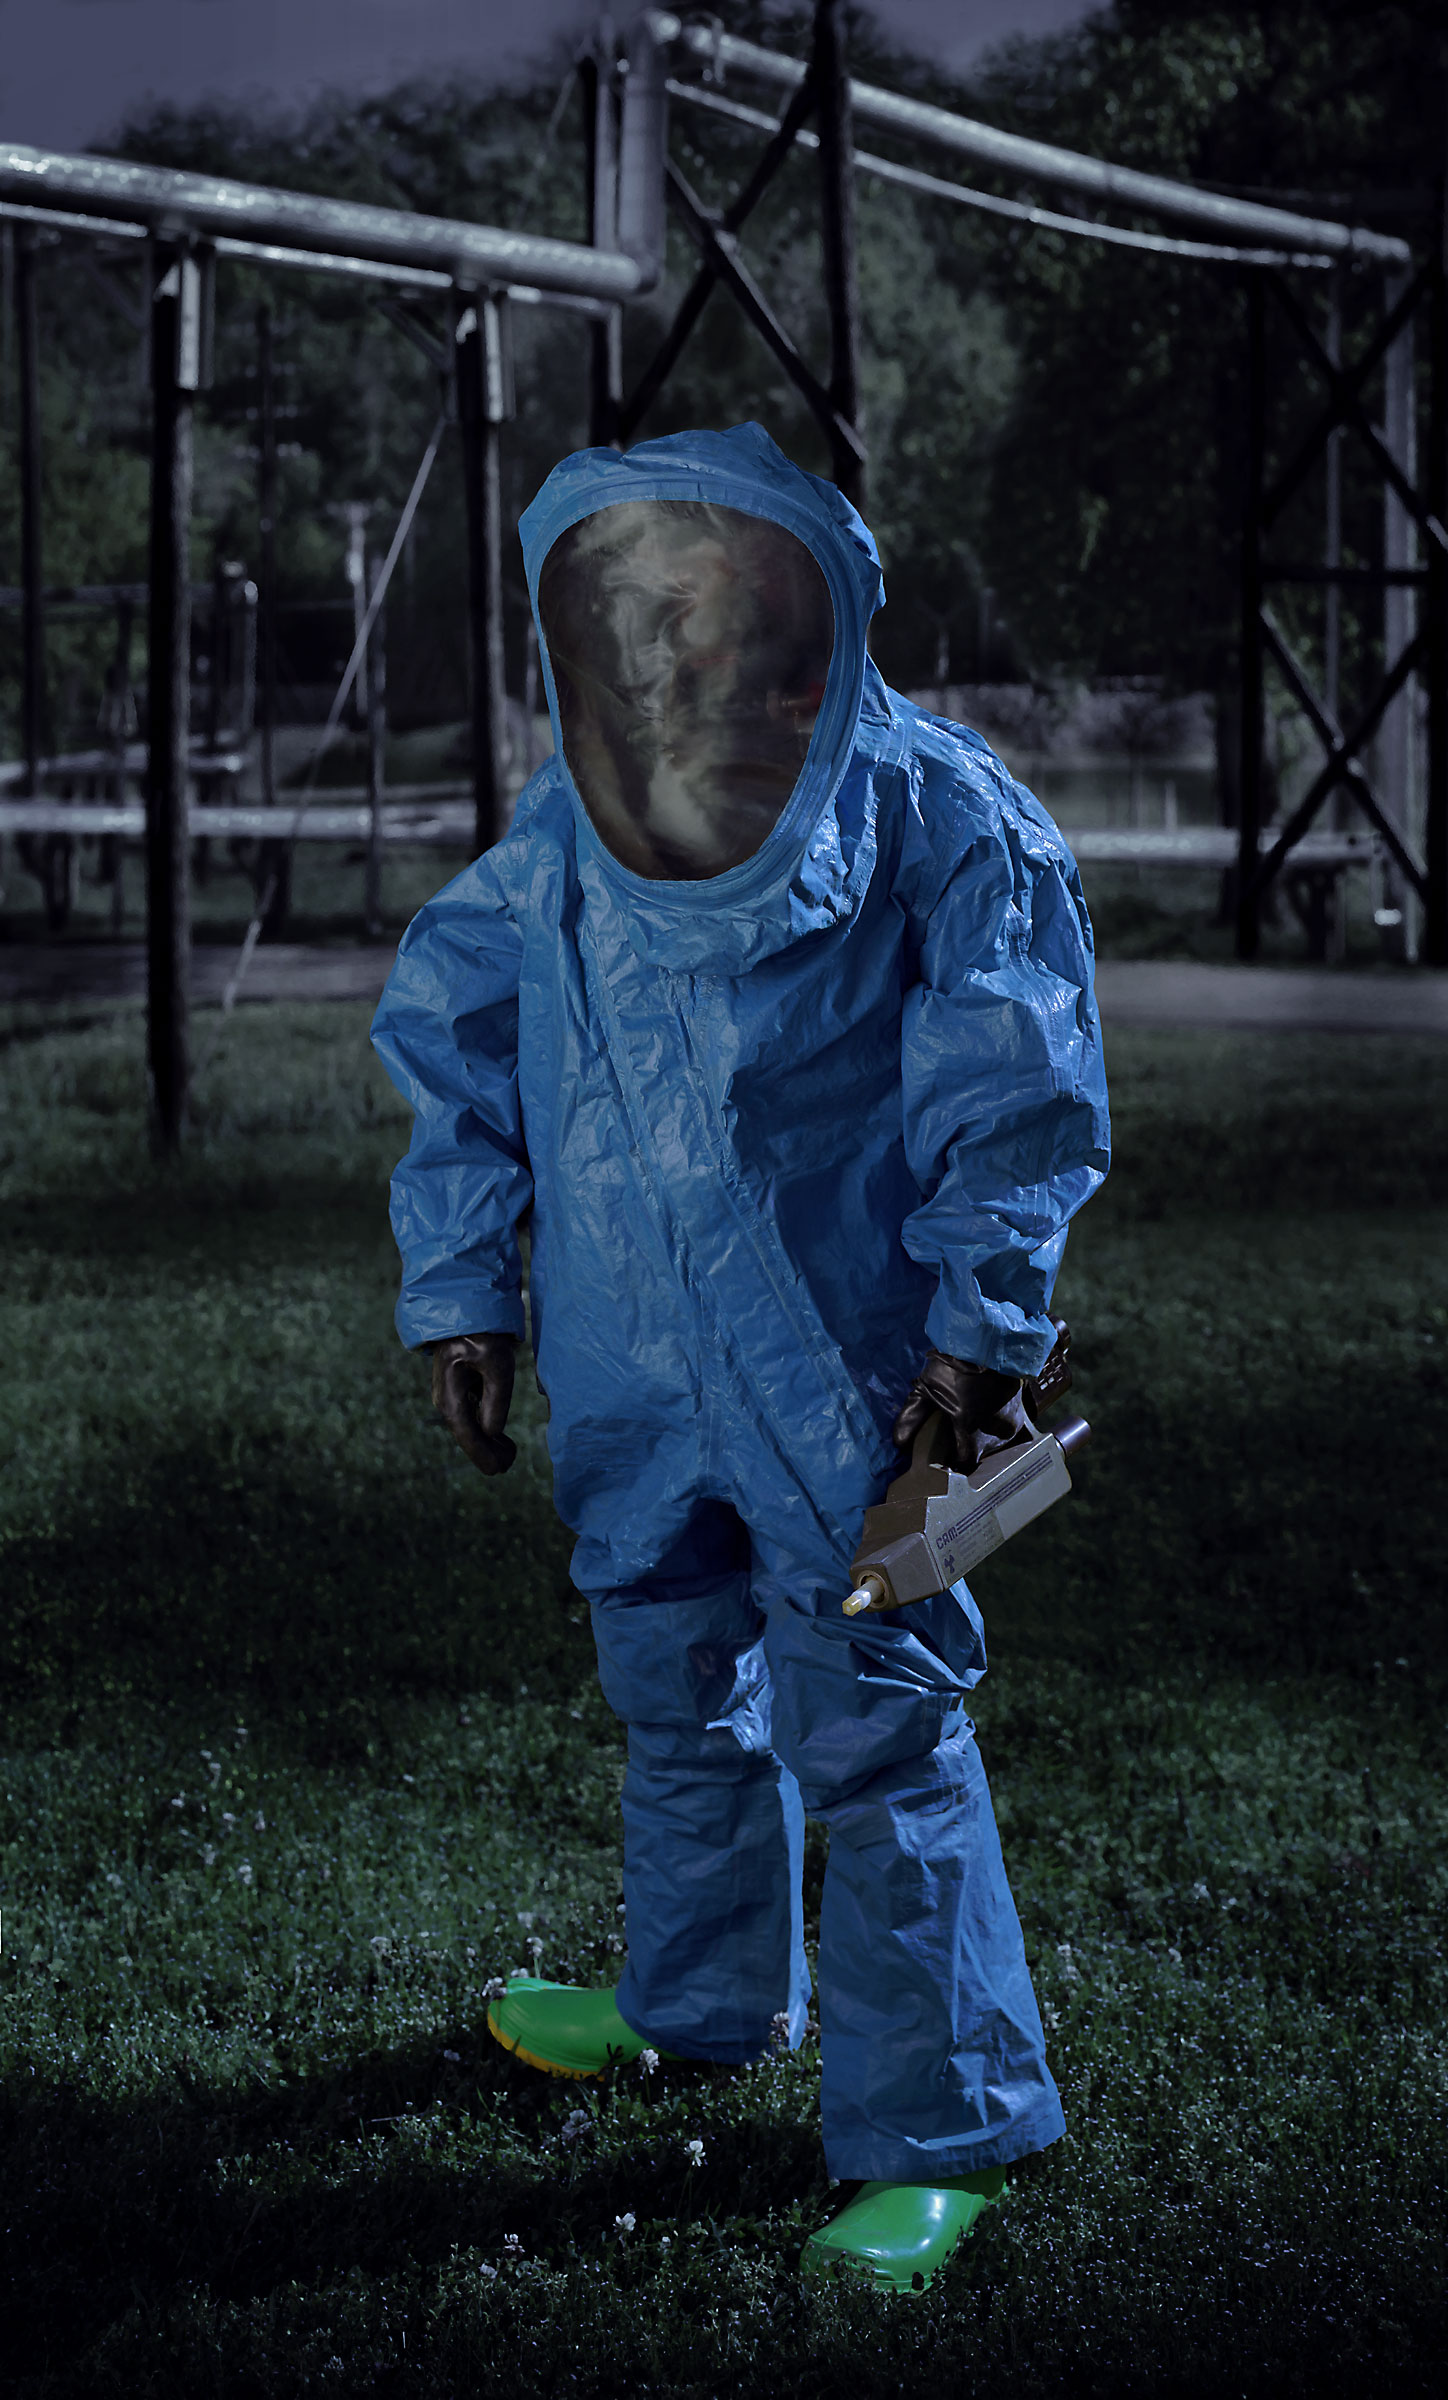 <p><em>Level A HAZMAT suit, blue (Ordnance Munitions and Electronic Maintenance School, U.S. Army, Redstone Arsenal, Huntsville, AL)</em>, 2007, pigmented inkjet on canvas with varnish, 63X38 inches.</p>